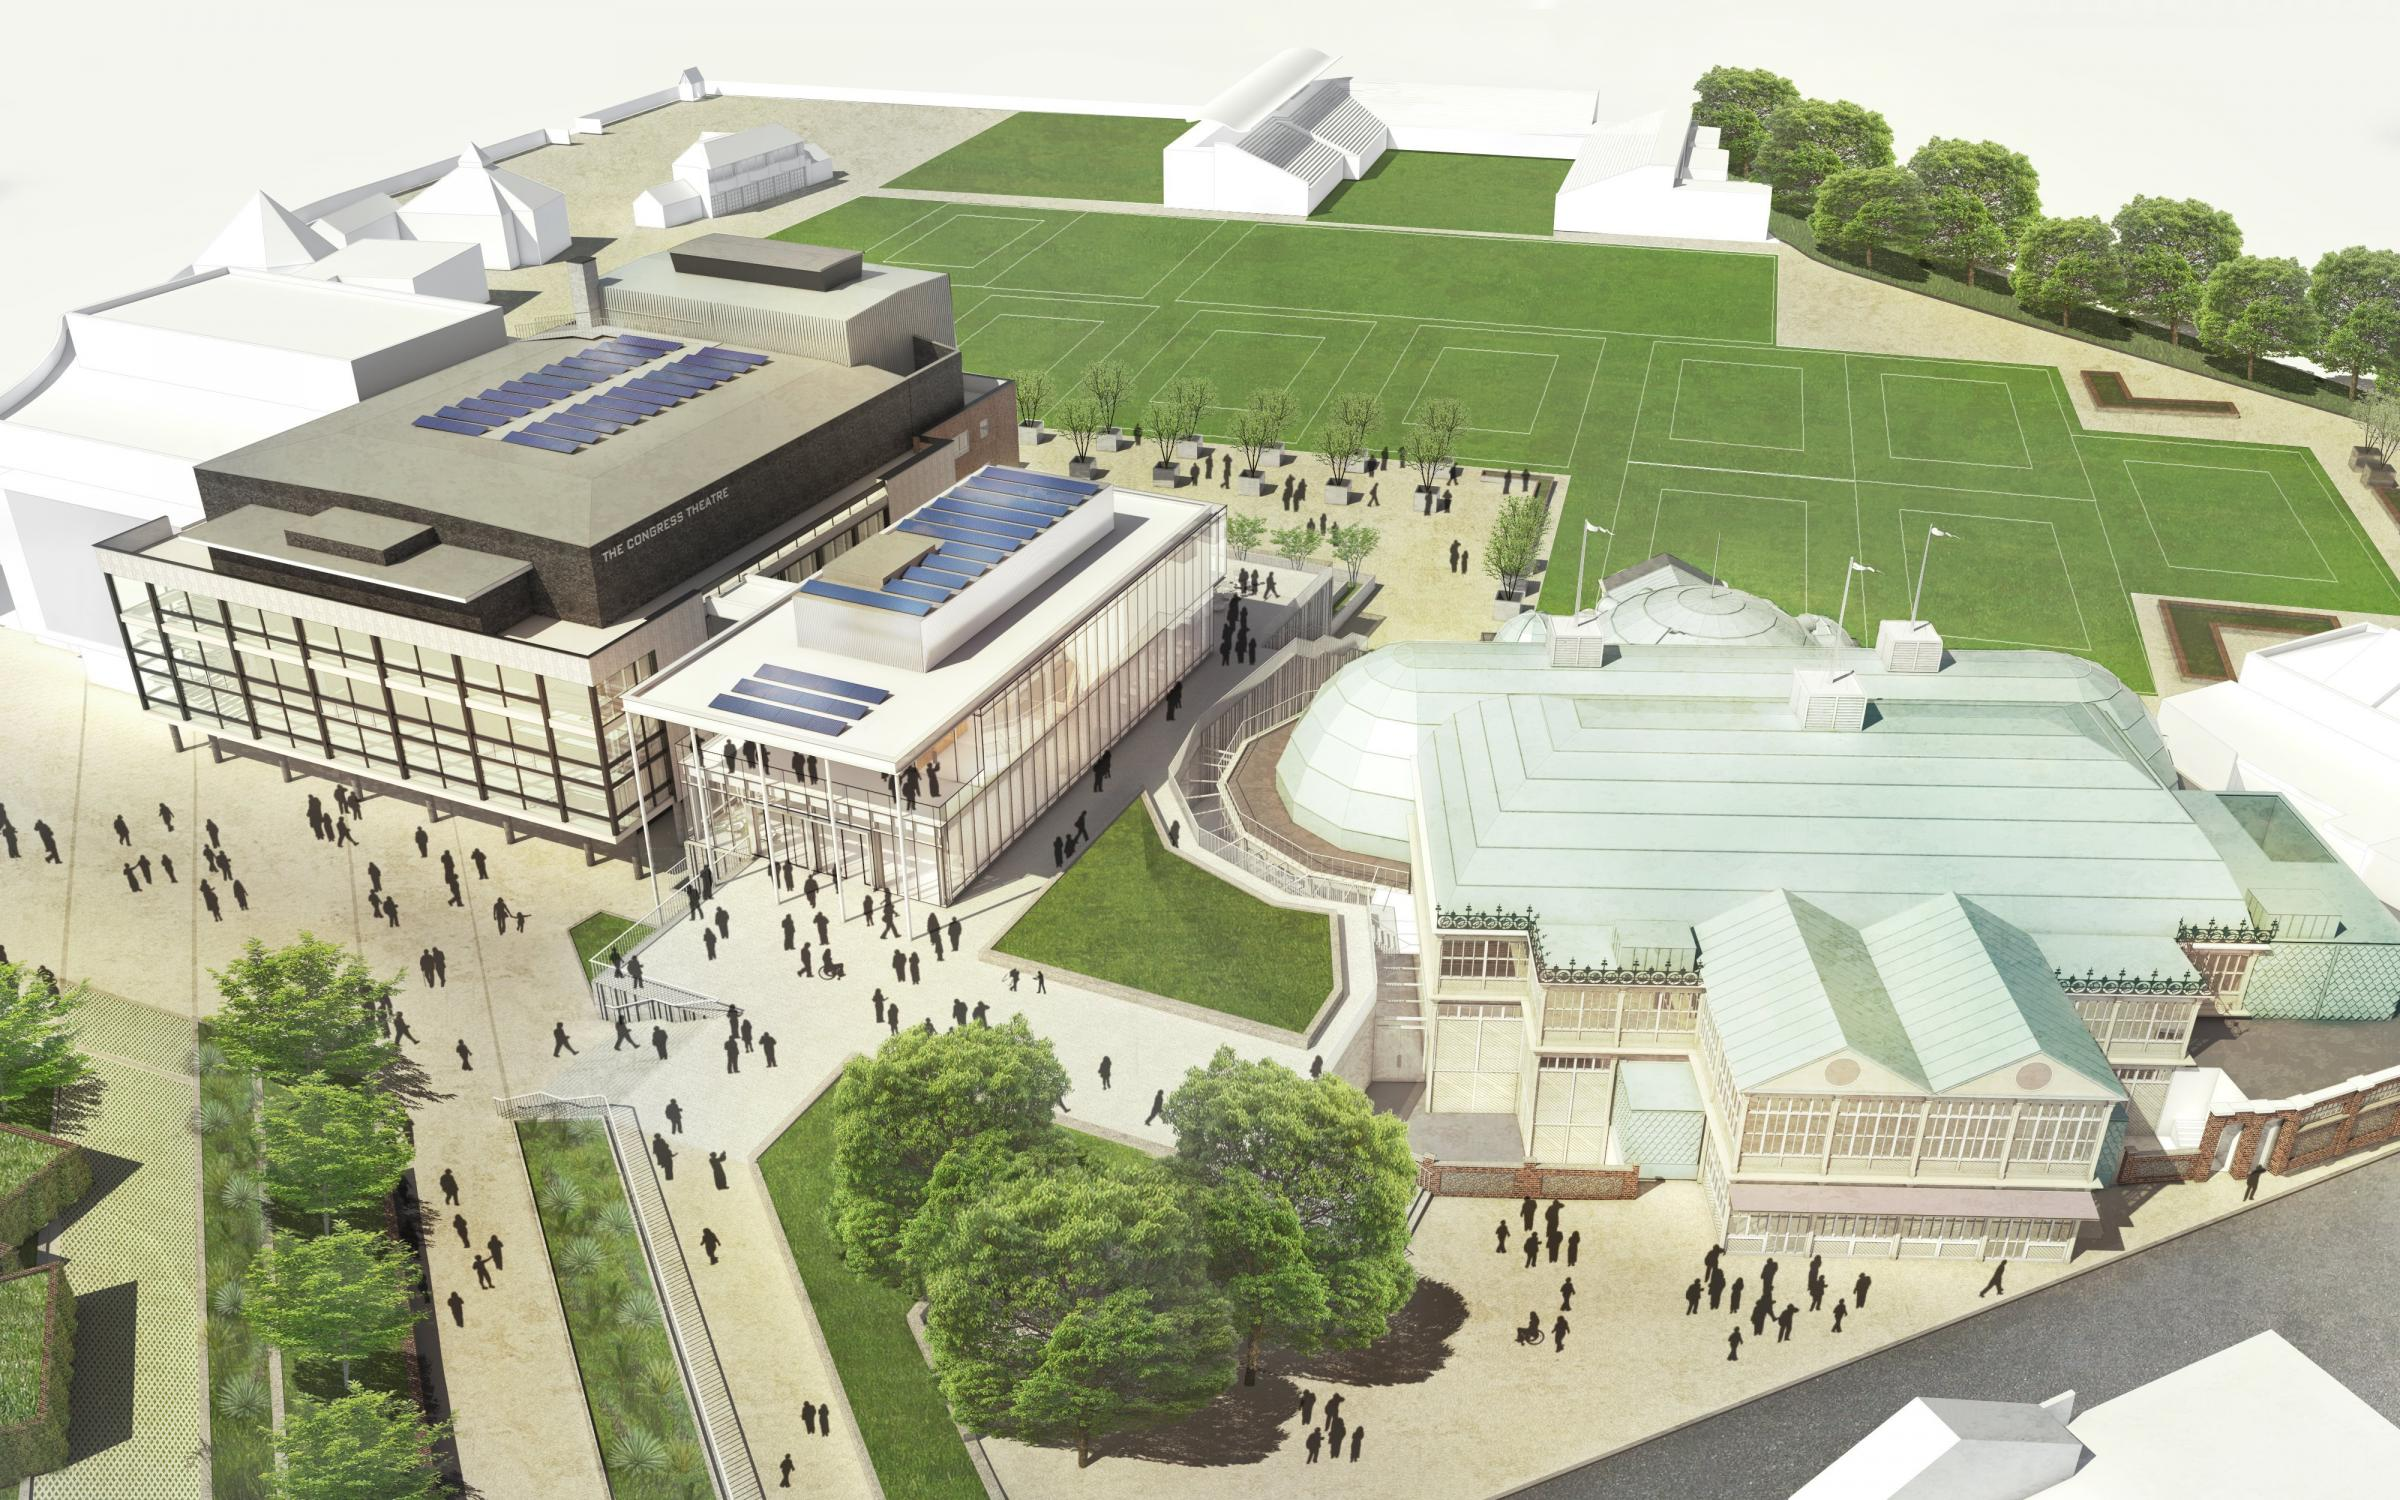 44m theatre revamp sparks war of words | The Argus